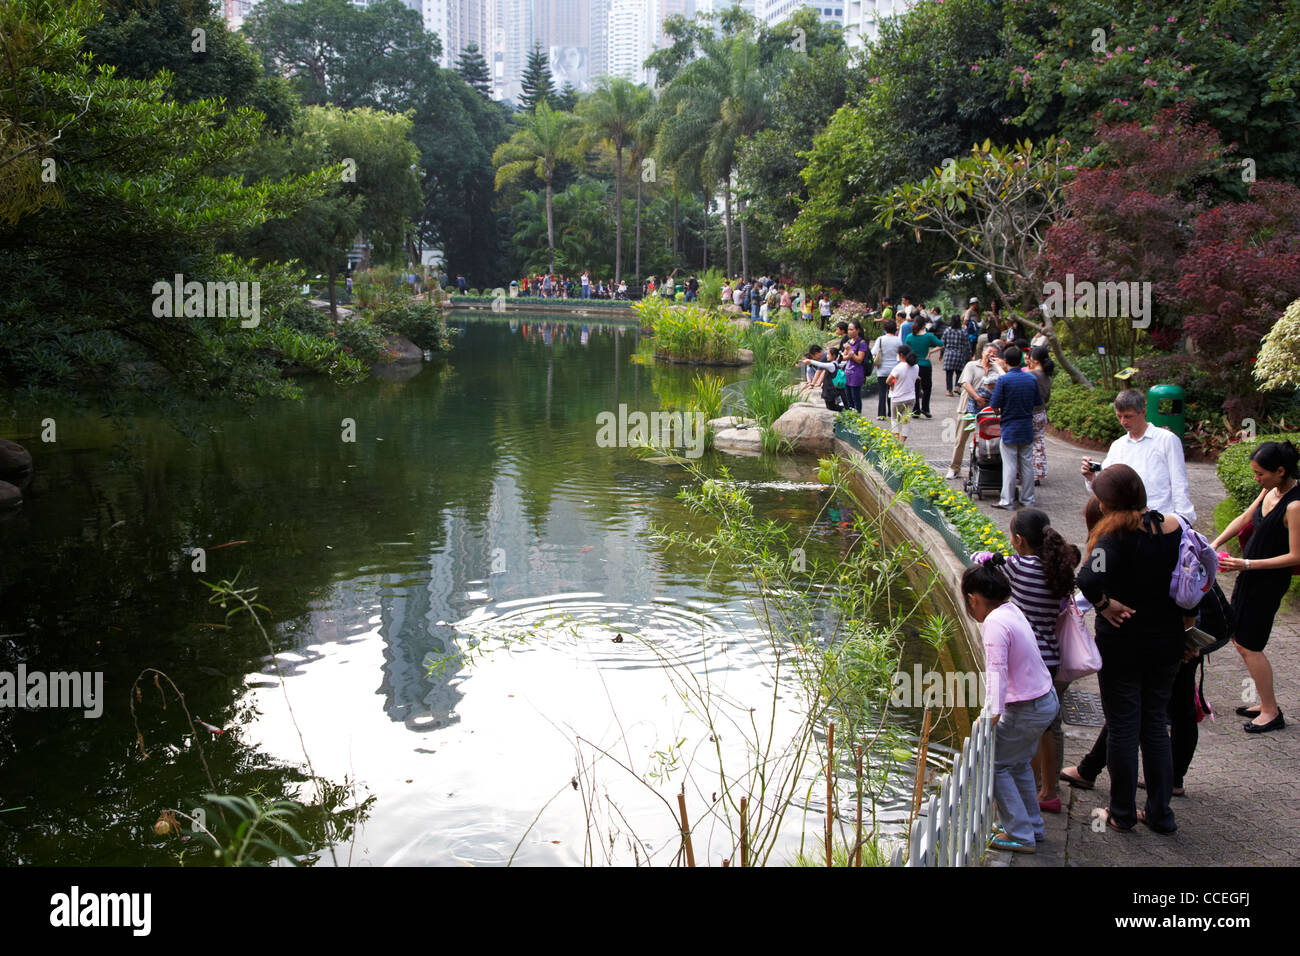 artificial lake in hong kong park central hksar china asia - Stock Image